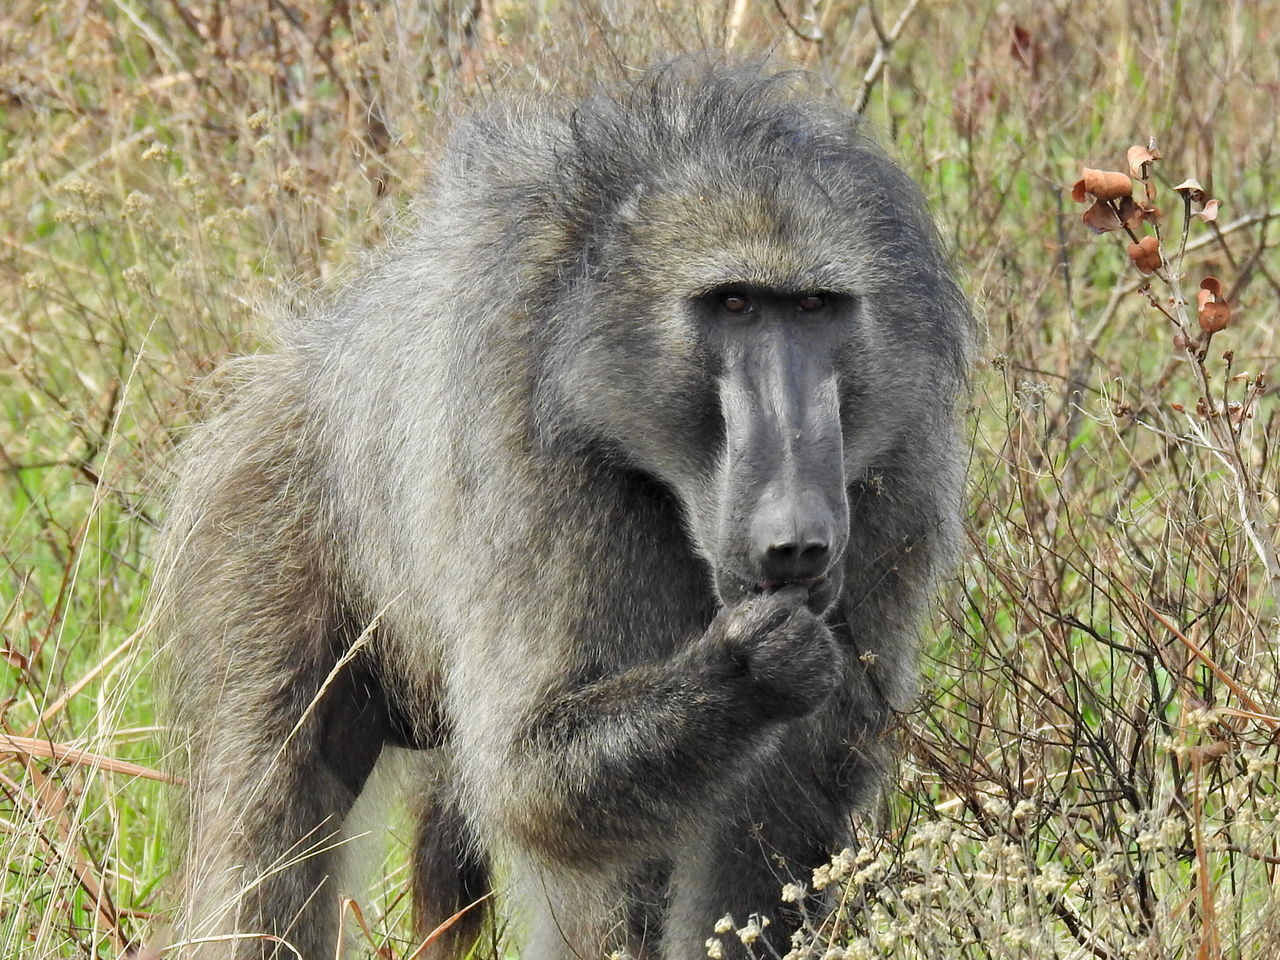 animals in the wild, one animal, mammal, animal wildlife, animal themes, baboon, monkey, day, outdoors, nature, no people, plant, grass, close-up